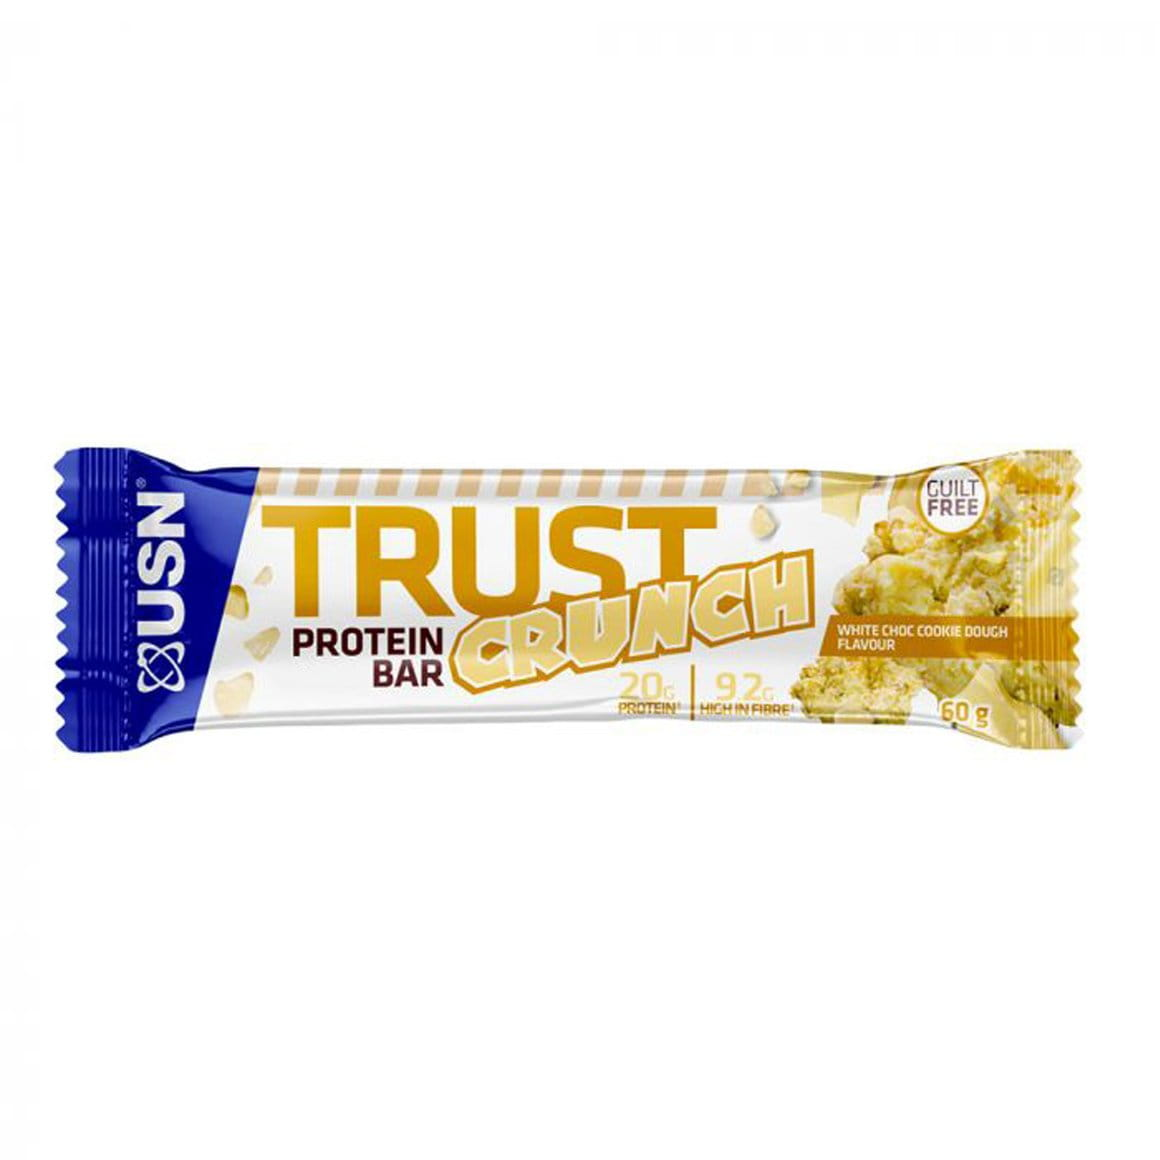 USN Trust Crunch Bar, 60g